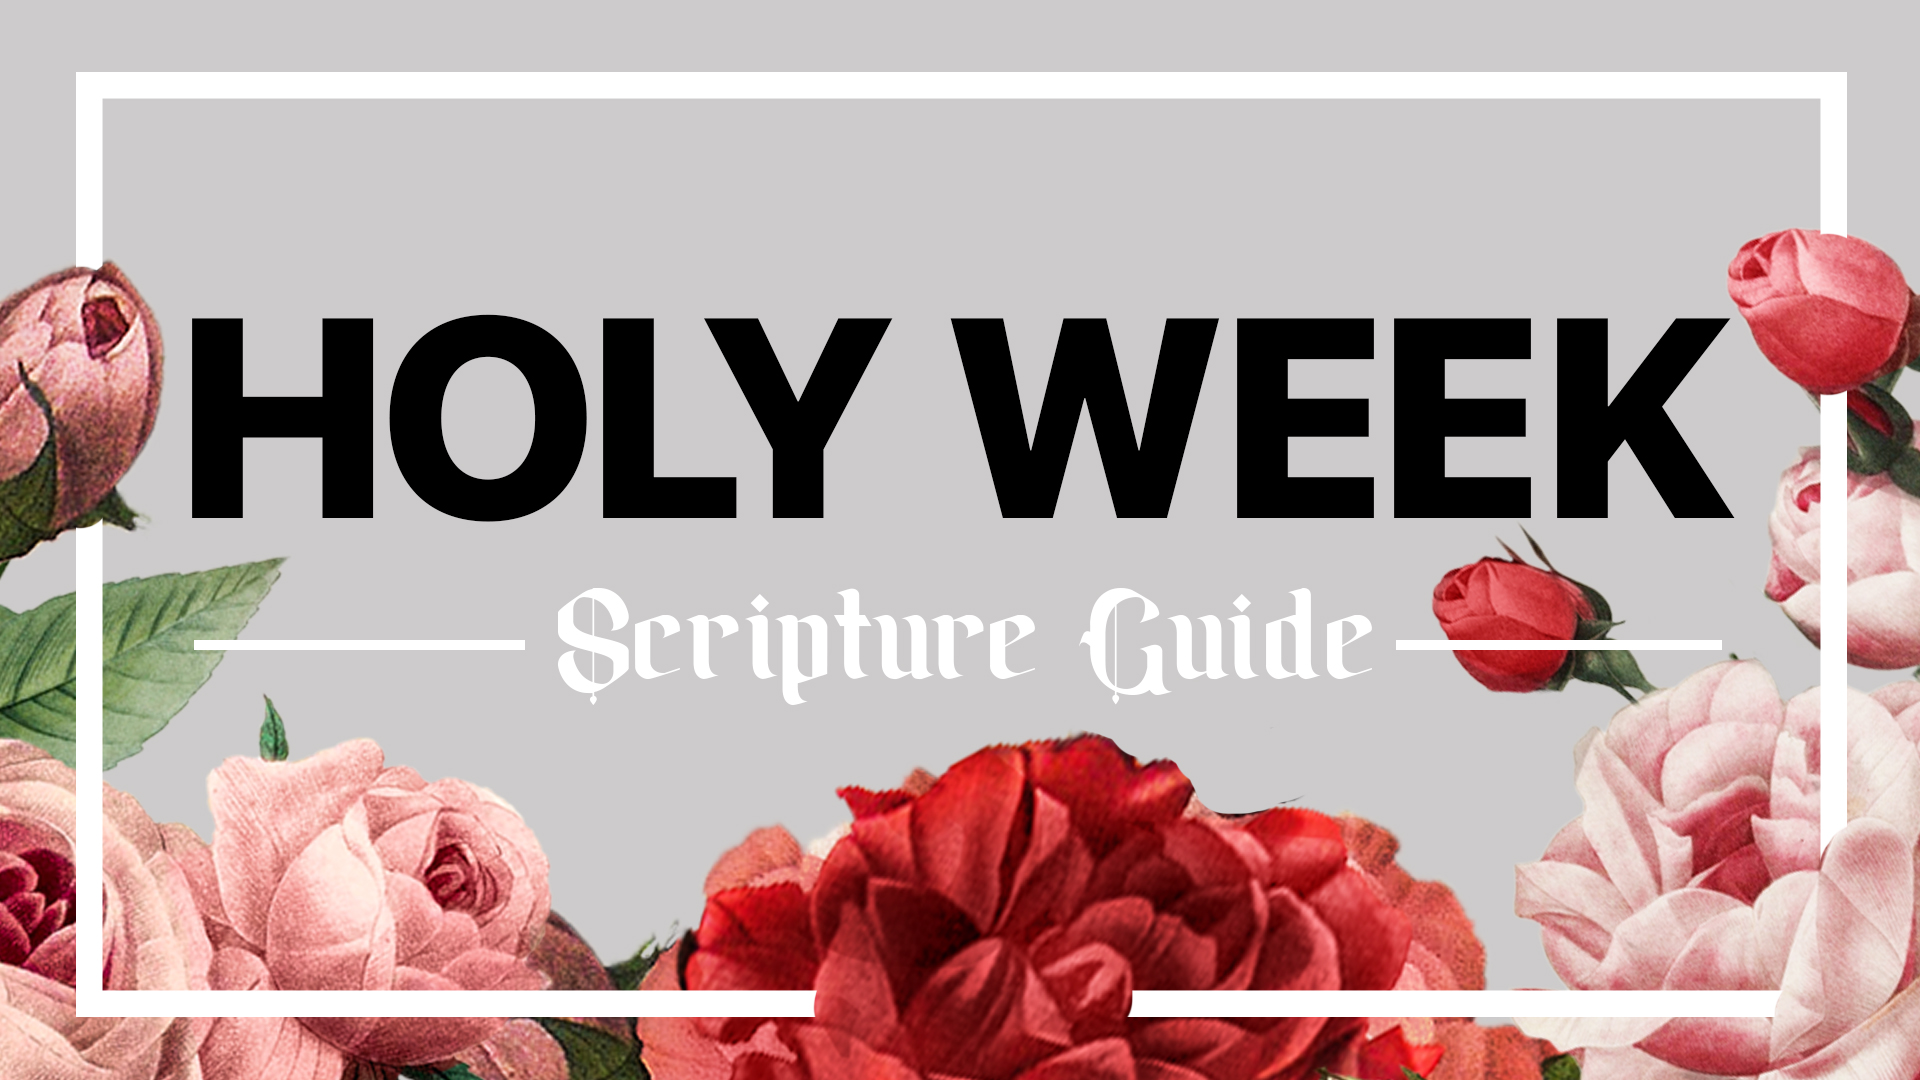 Holy Week Scripture Guide